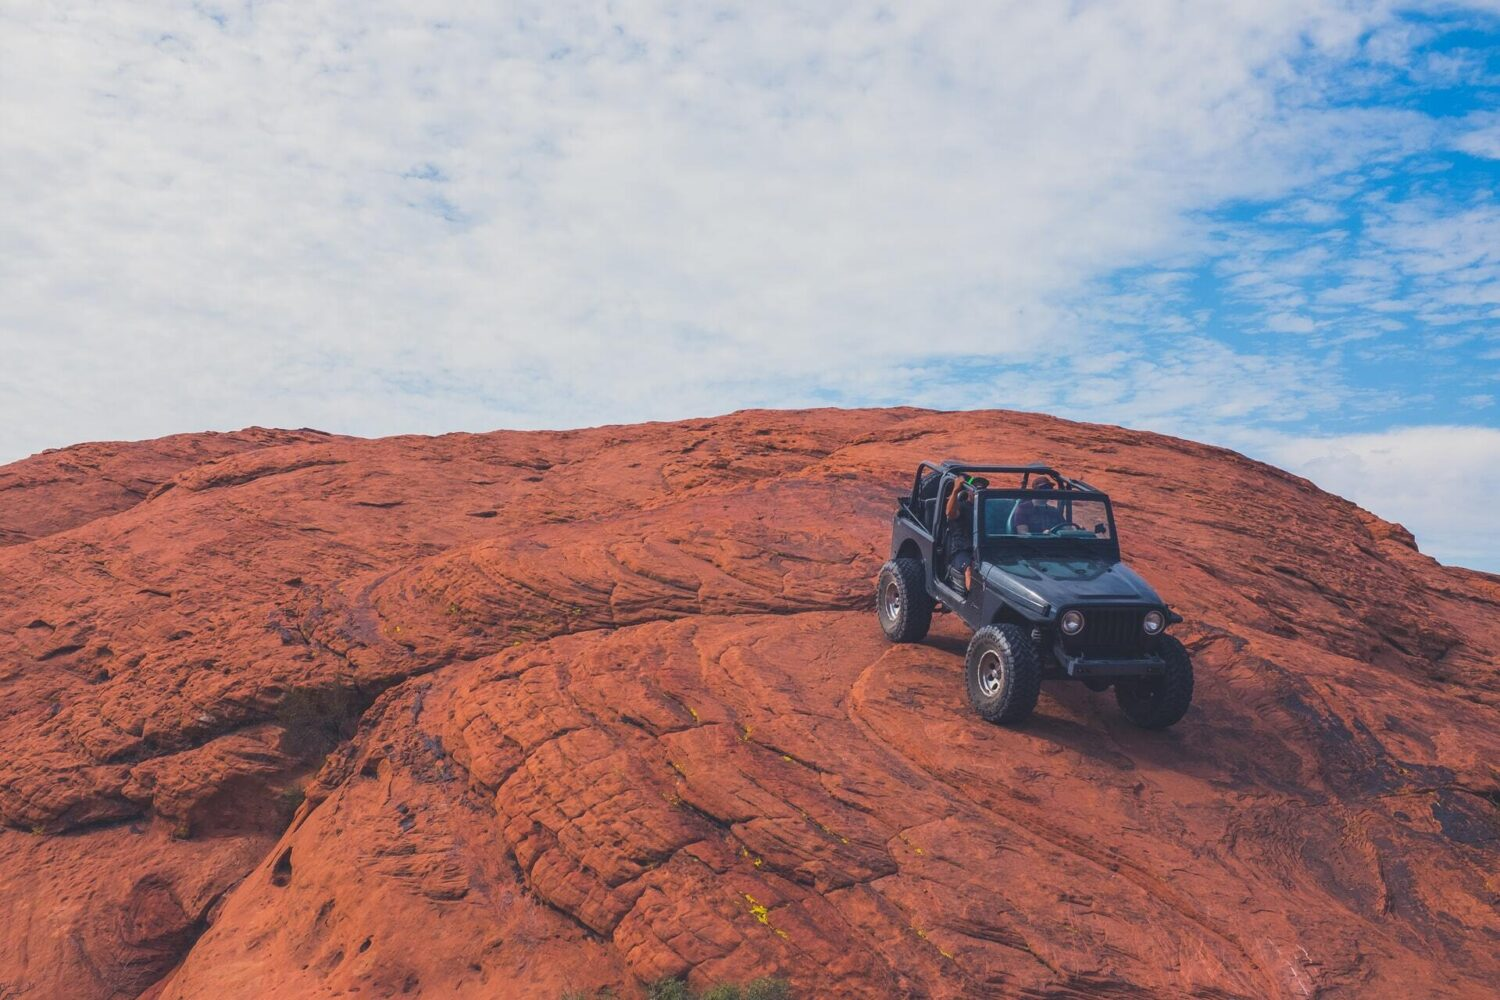 A jeep parked on a steep red rock with blue sky in the background